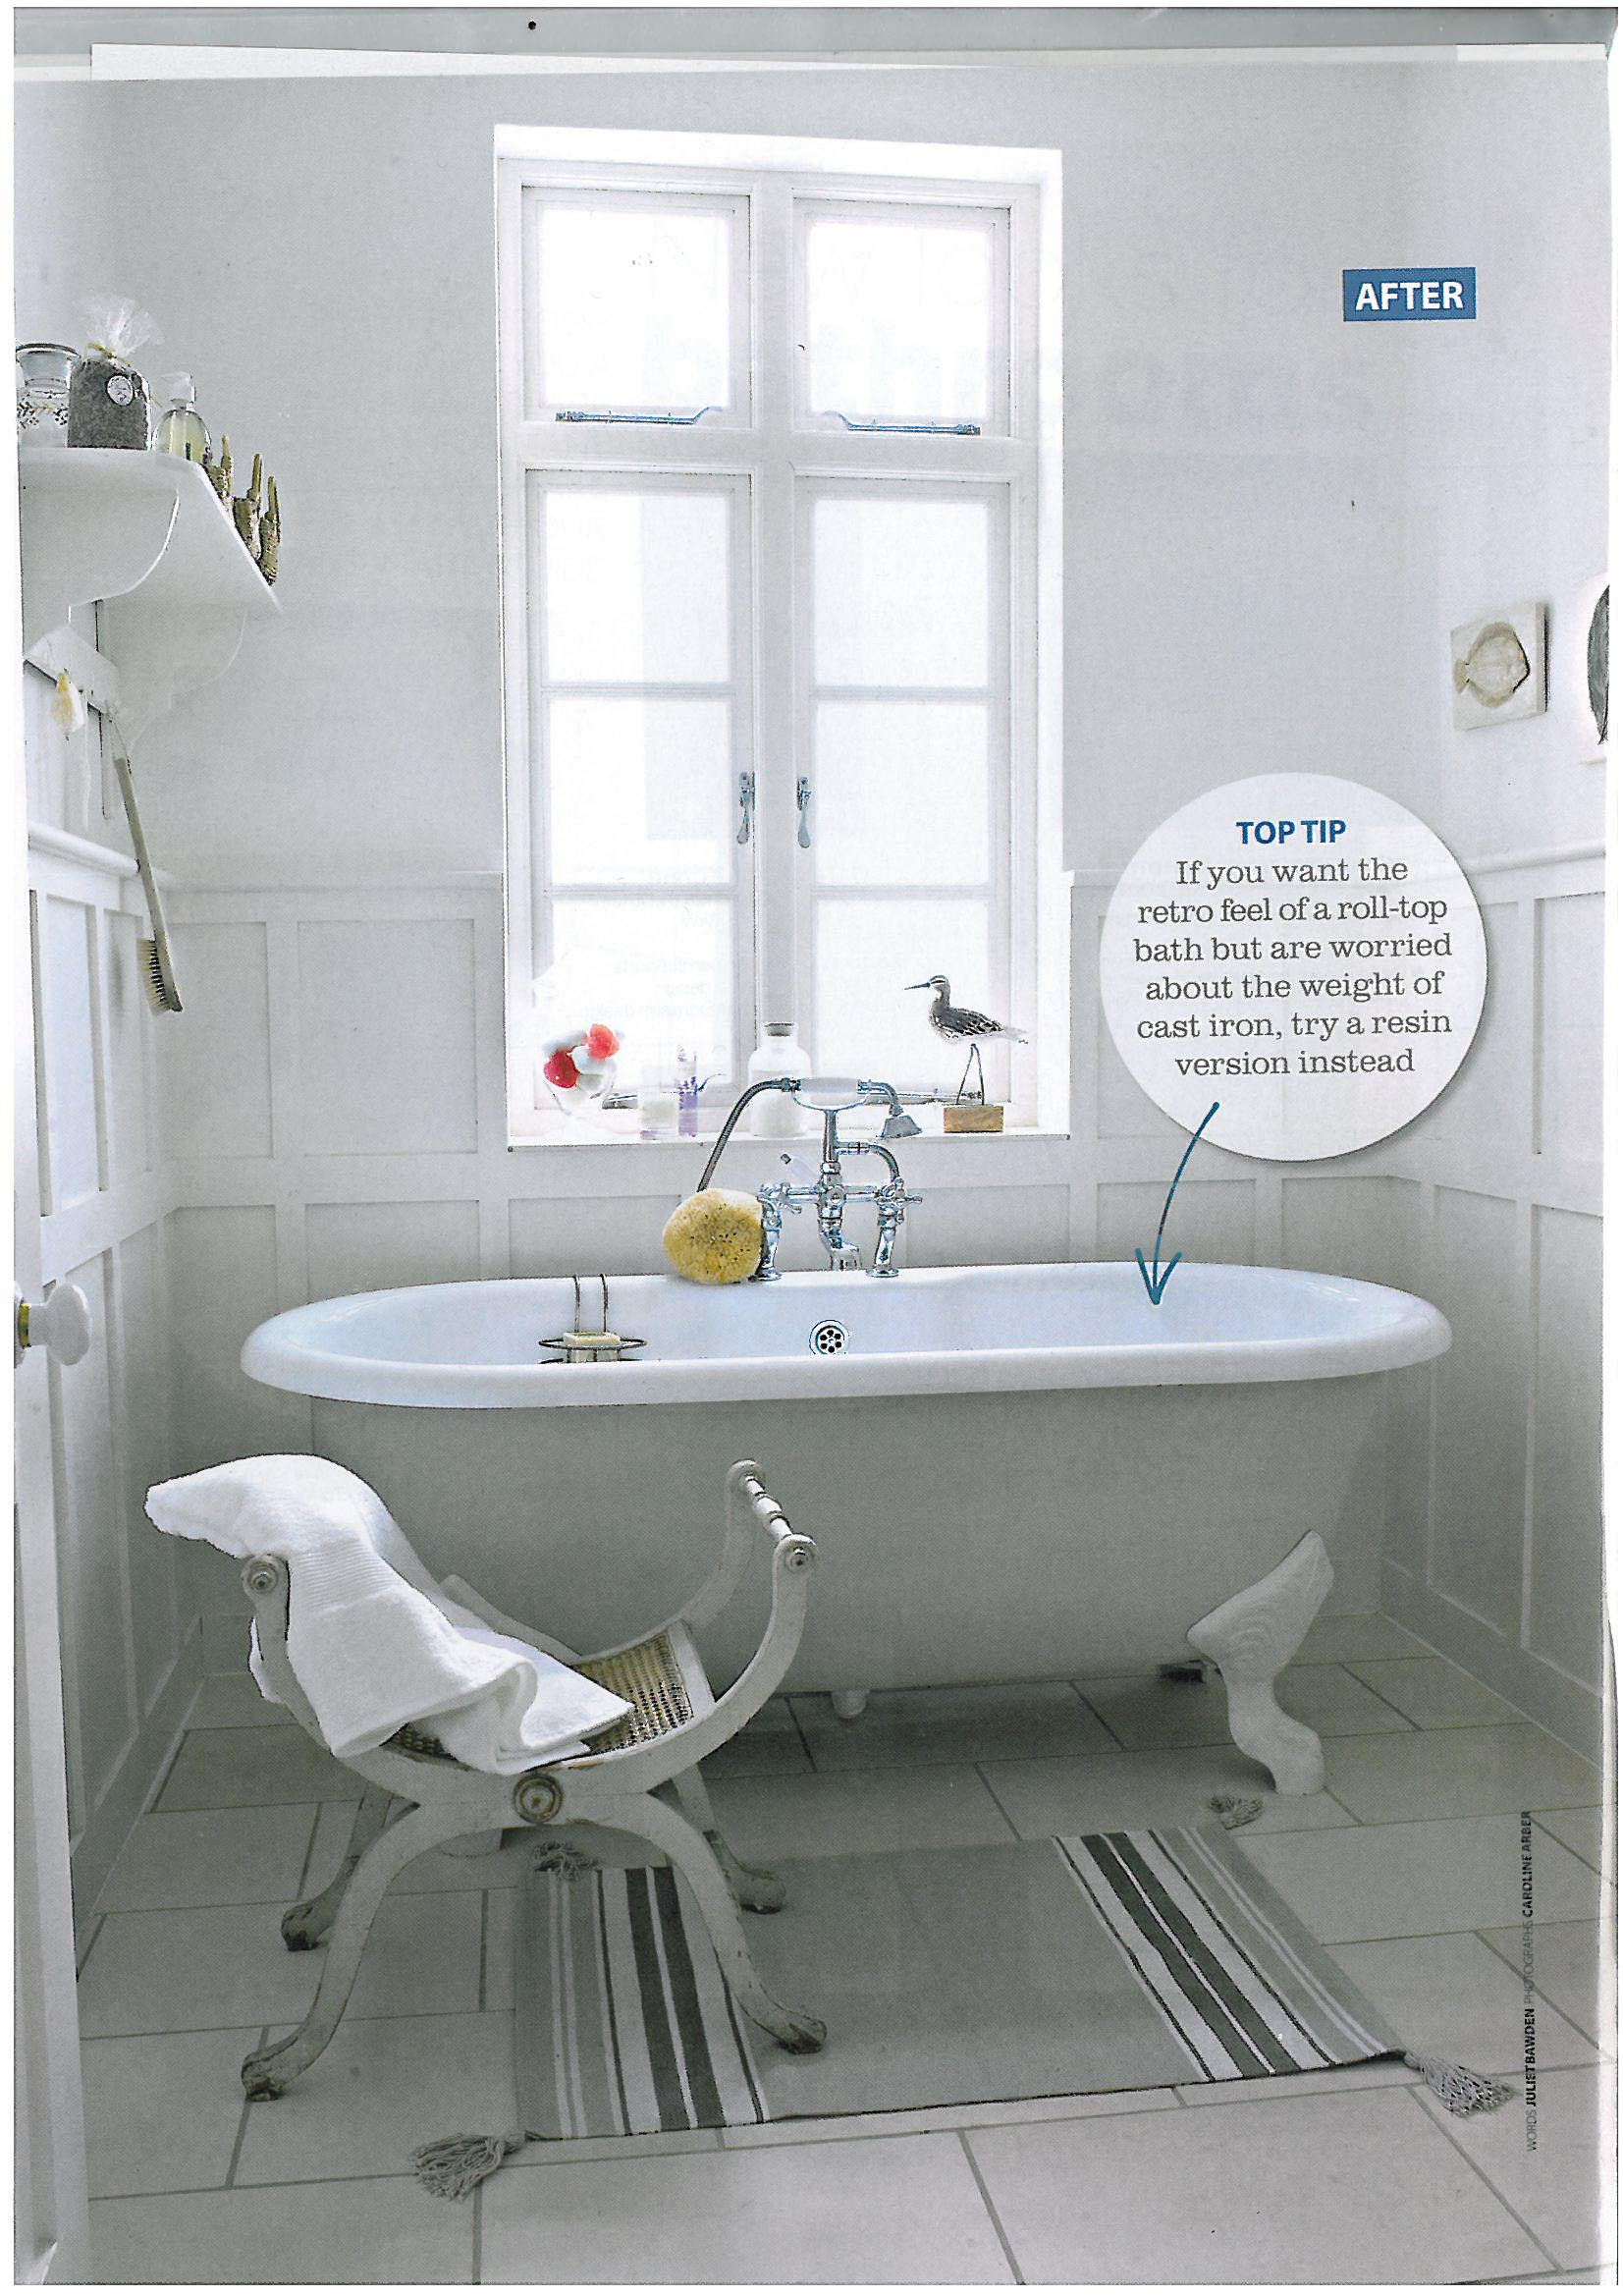 Inspirational Bathroom Bathroom Inspiration The House That Jack Built